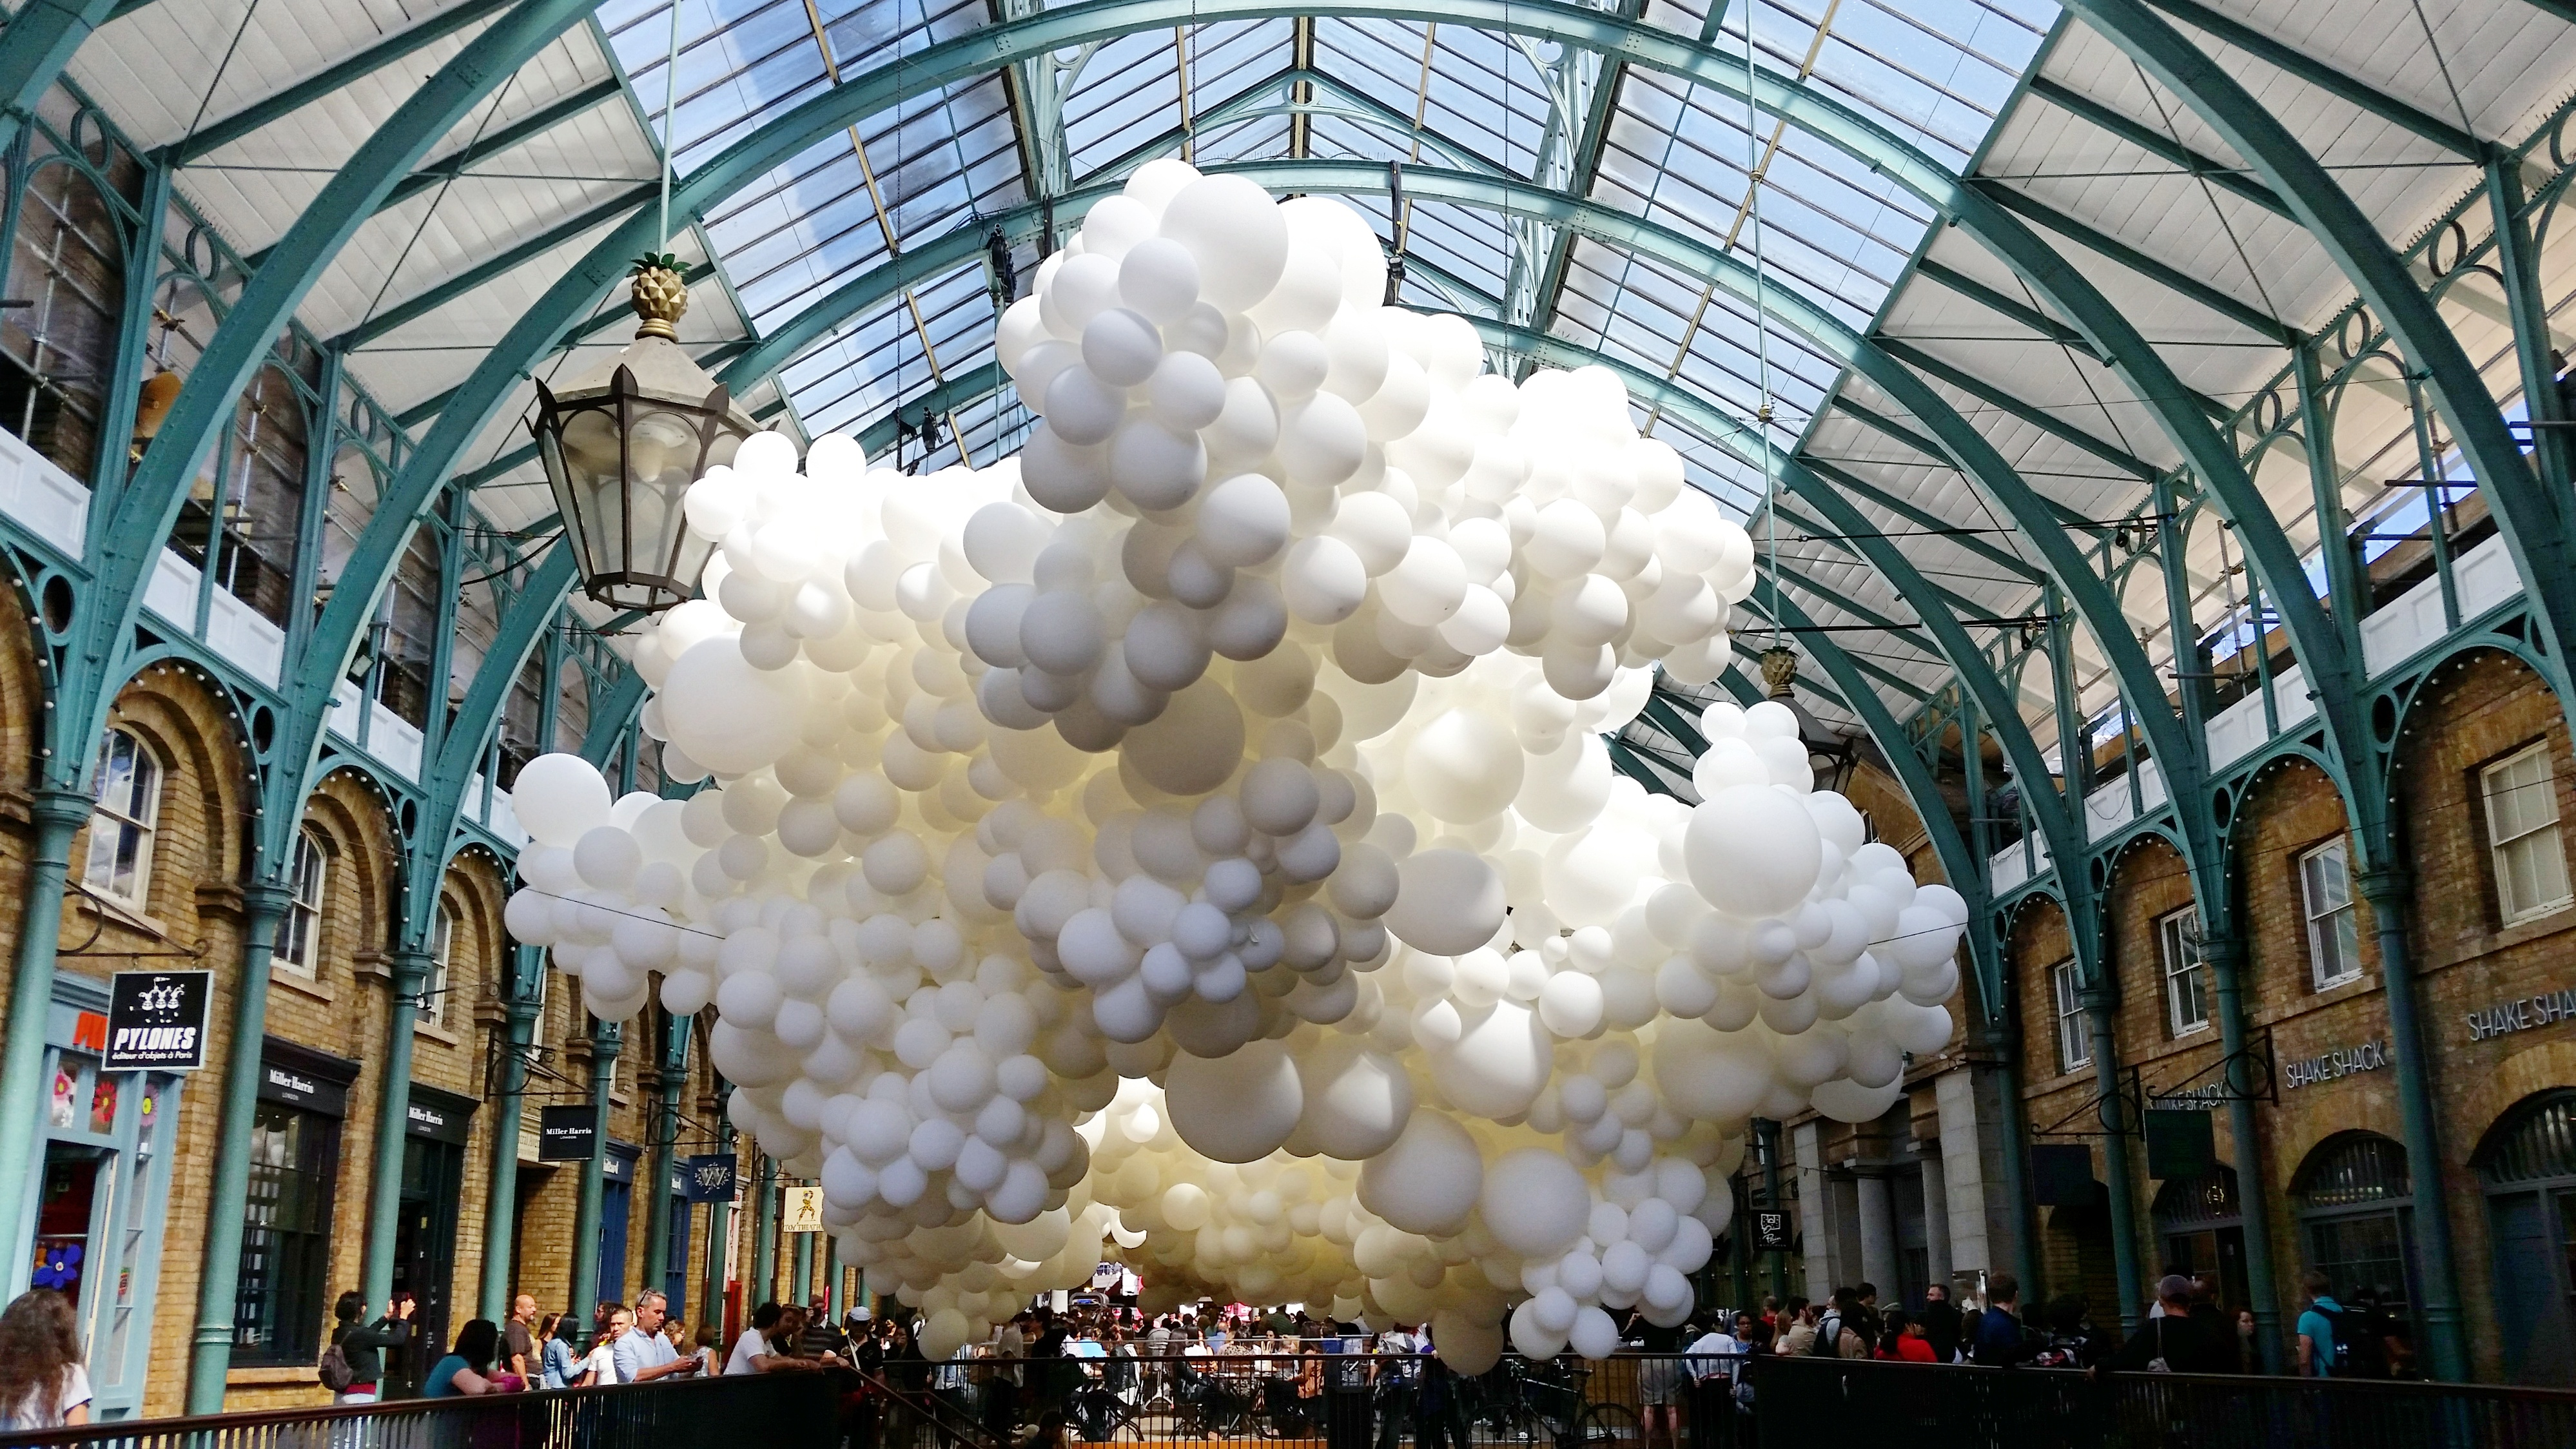 charles pc3a9tillons heartbeat featuring balloons at covent garden london 1